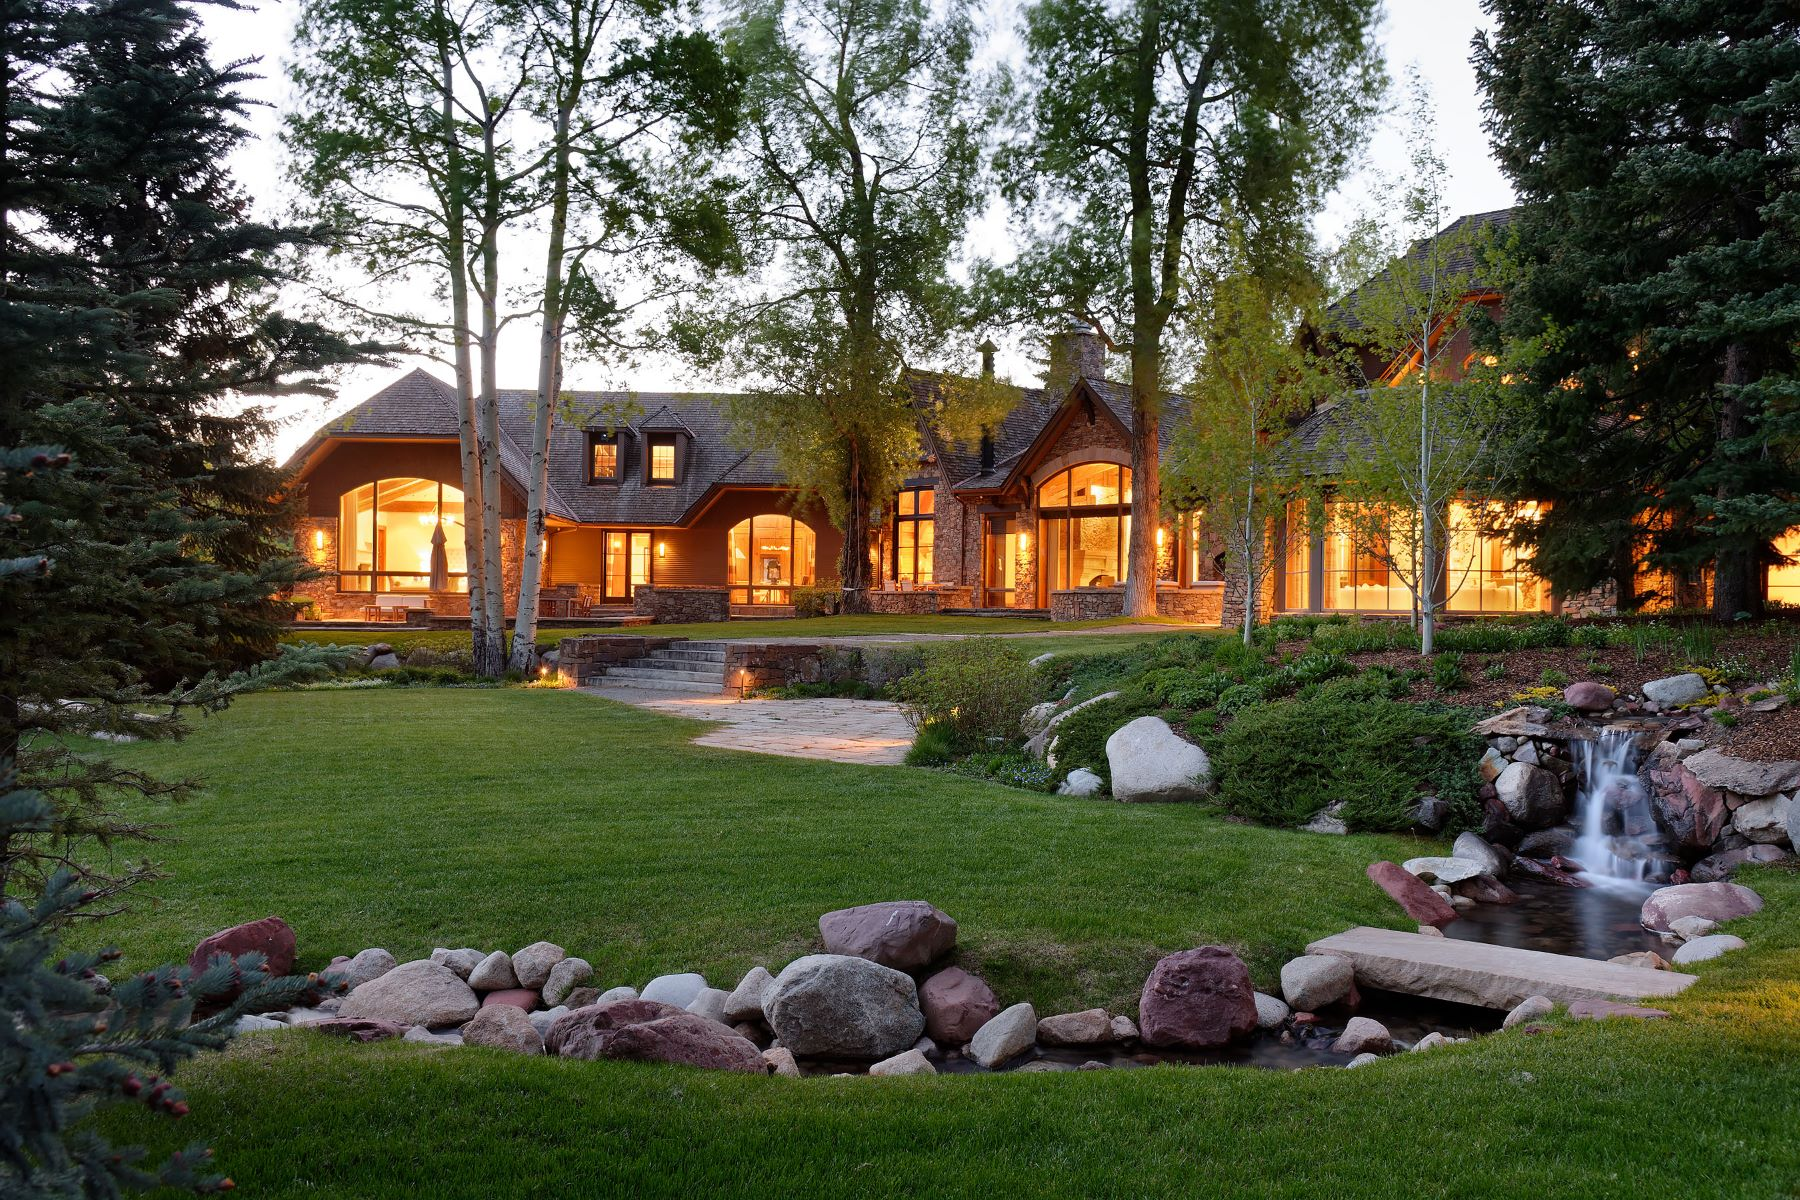 Casa Unifamiliar por un Venta en Aspen Highlands Estate 36 Glen Garry Drive Aspen, Colorado 81611 Estados Unidos